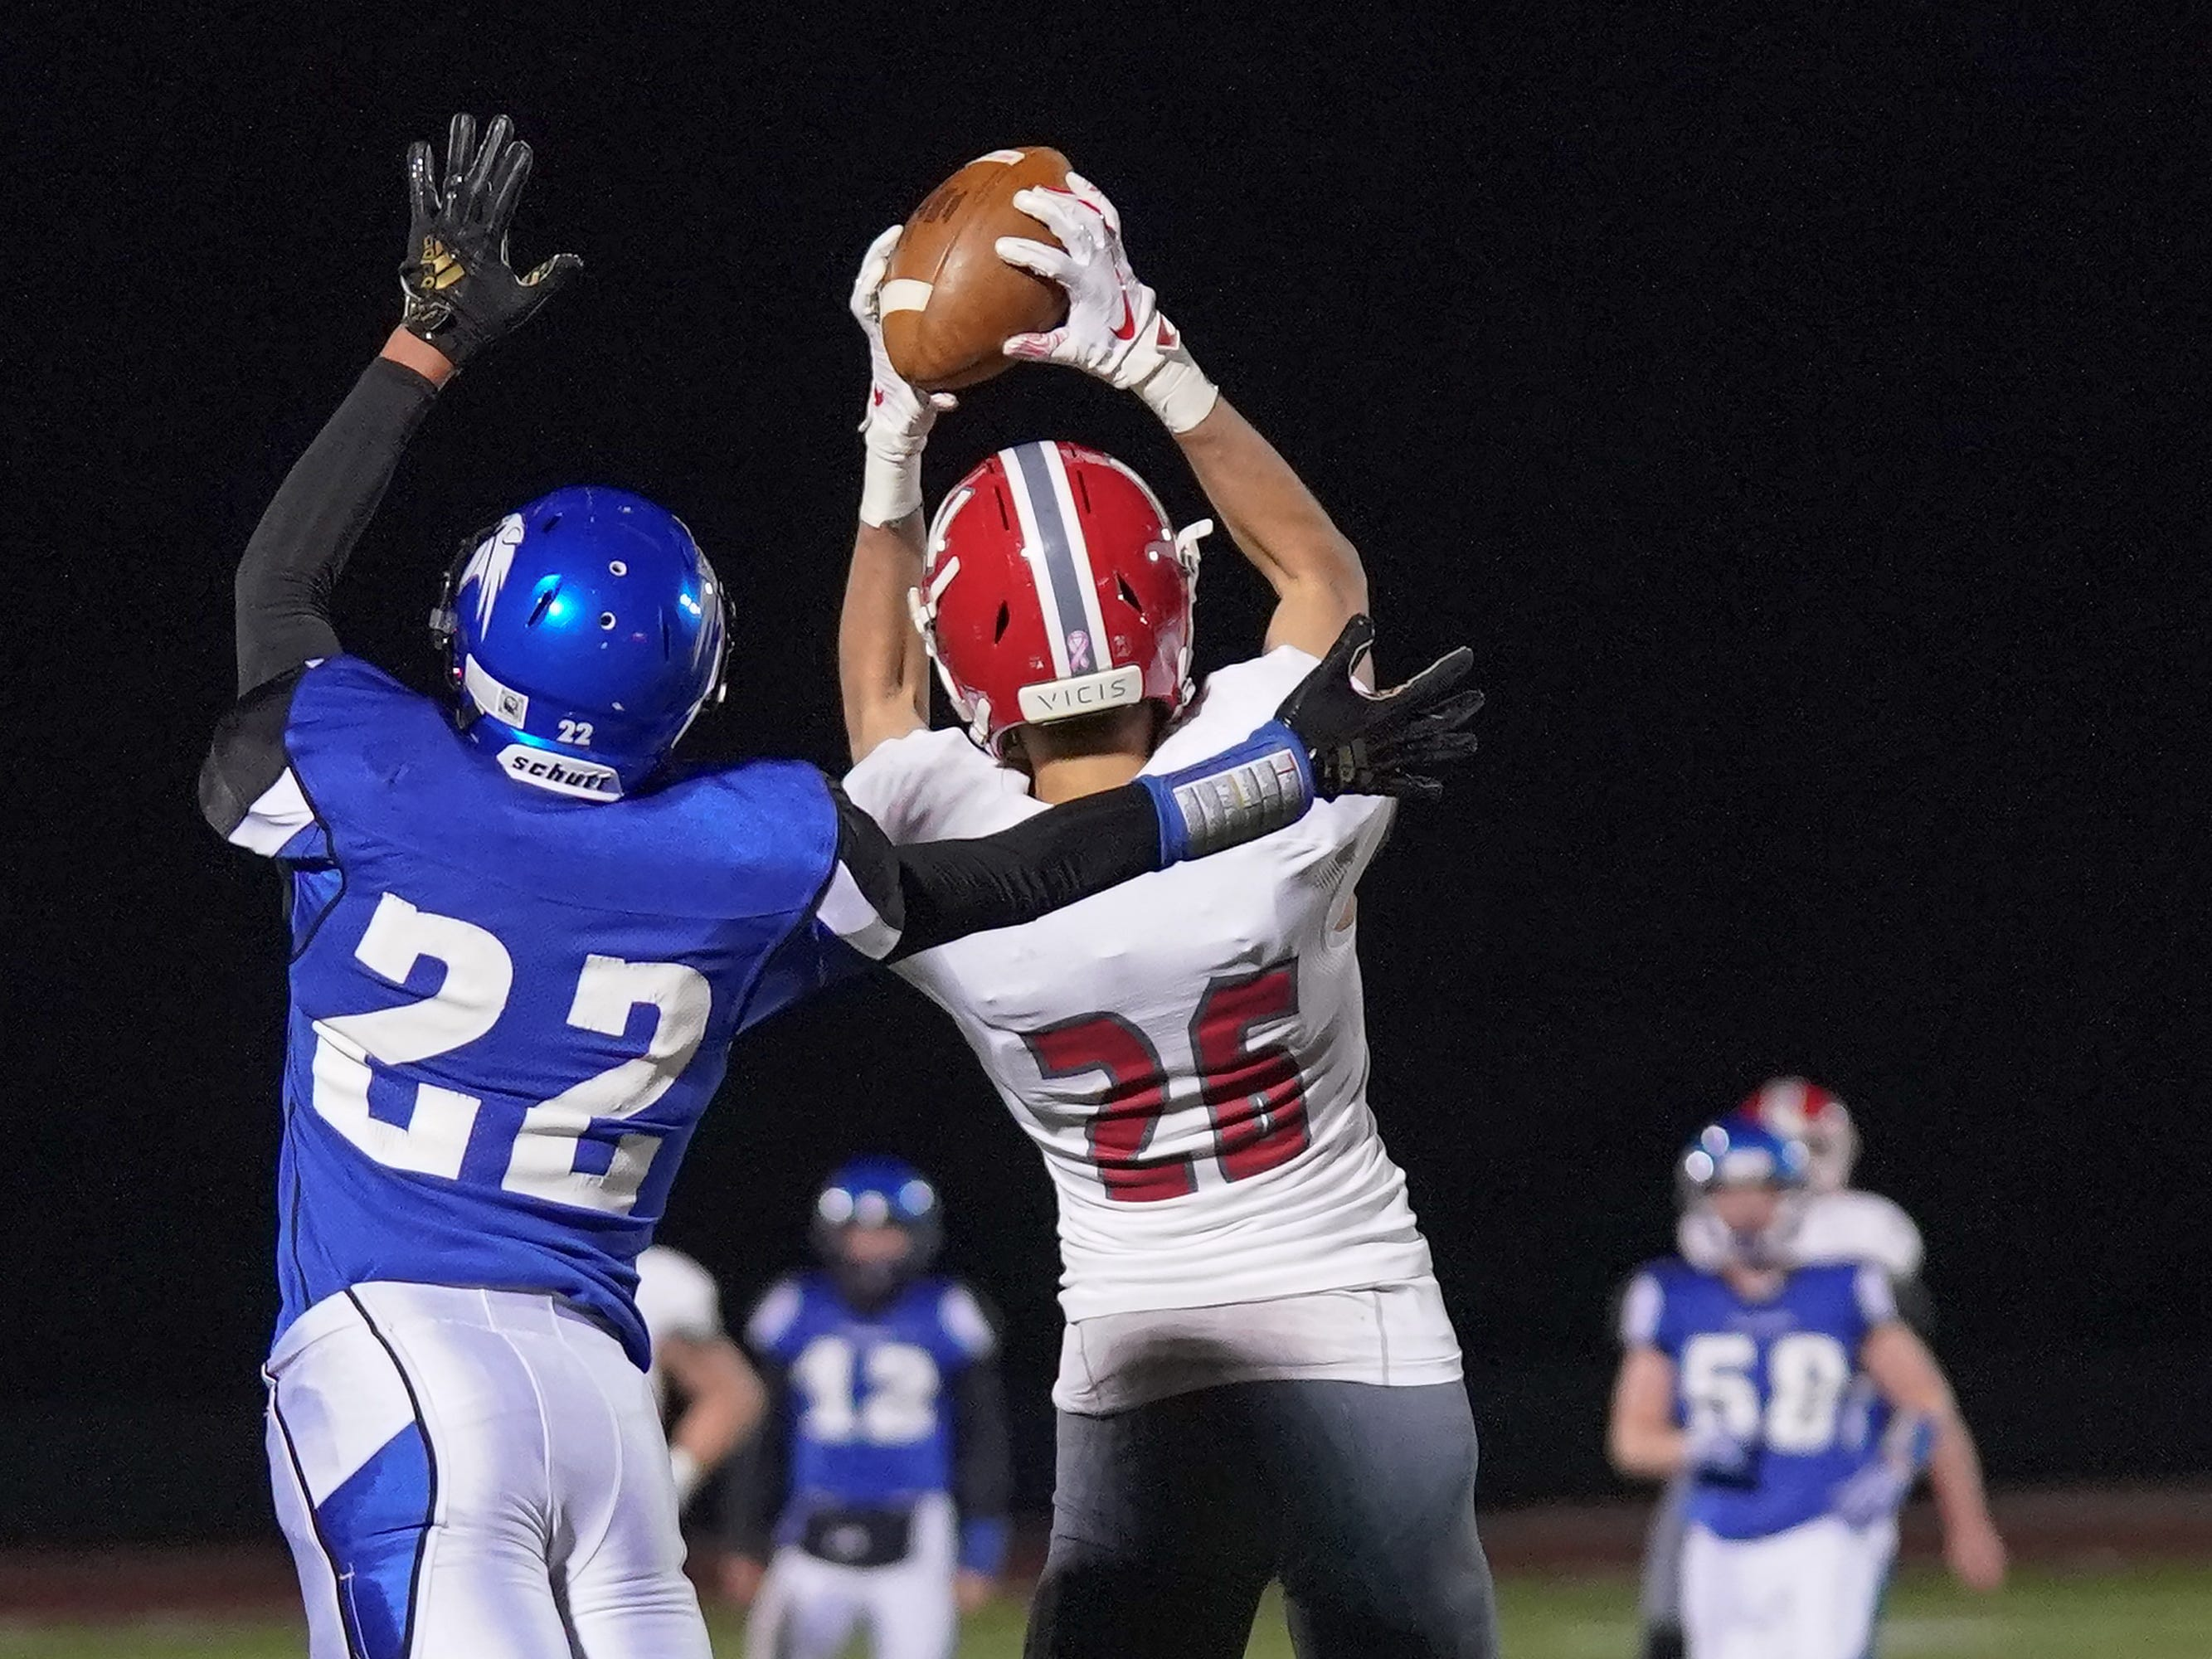 Jack VanDyke (26) of Neenah intercepts an Oshkosh West pass near the end zone in the fourth quarter. The Oshkosh West Wildcats hosted the Neenah Rockets in an FVA-South conference matchup Friday evening, October 12, 2018 at J. J. Keller Field at Titan Stadium.